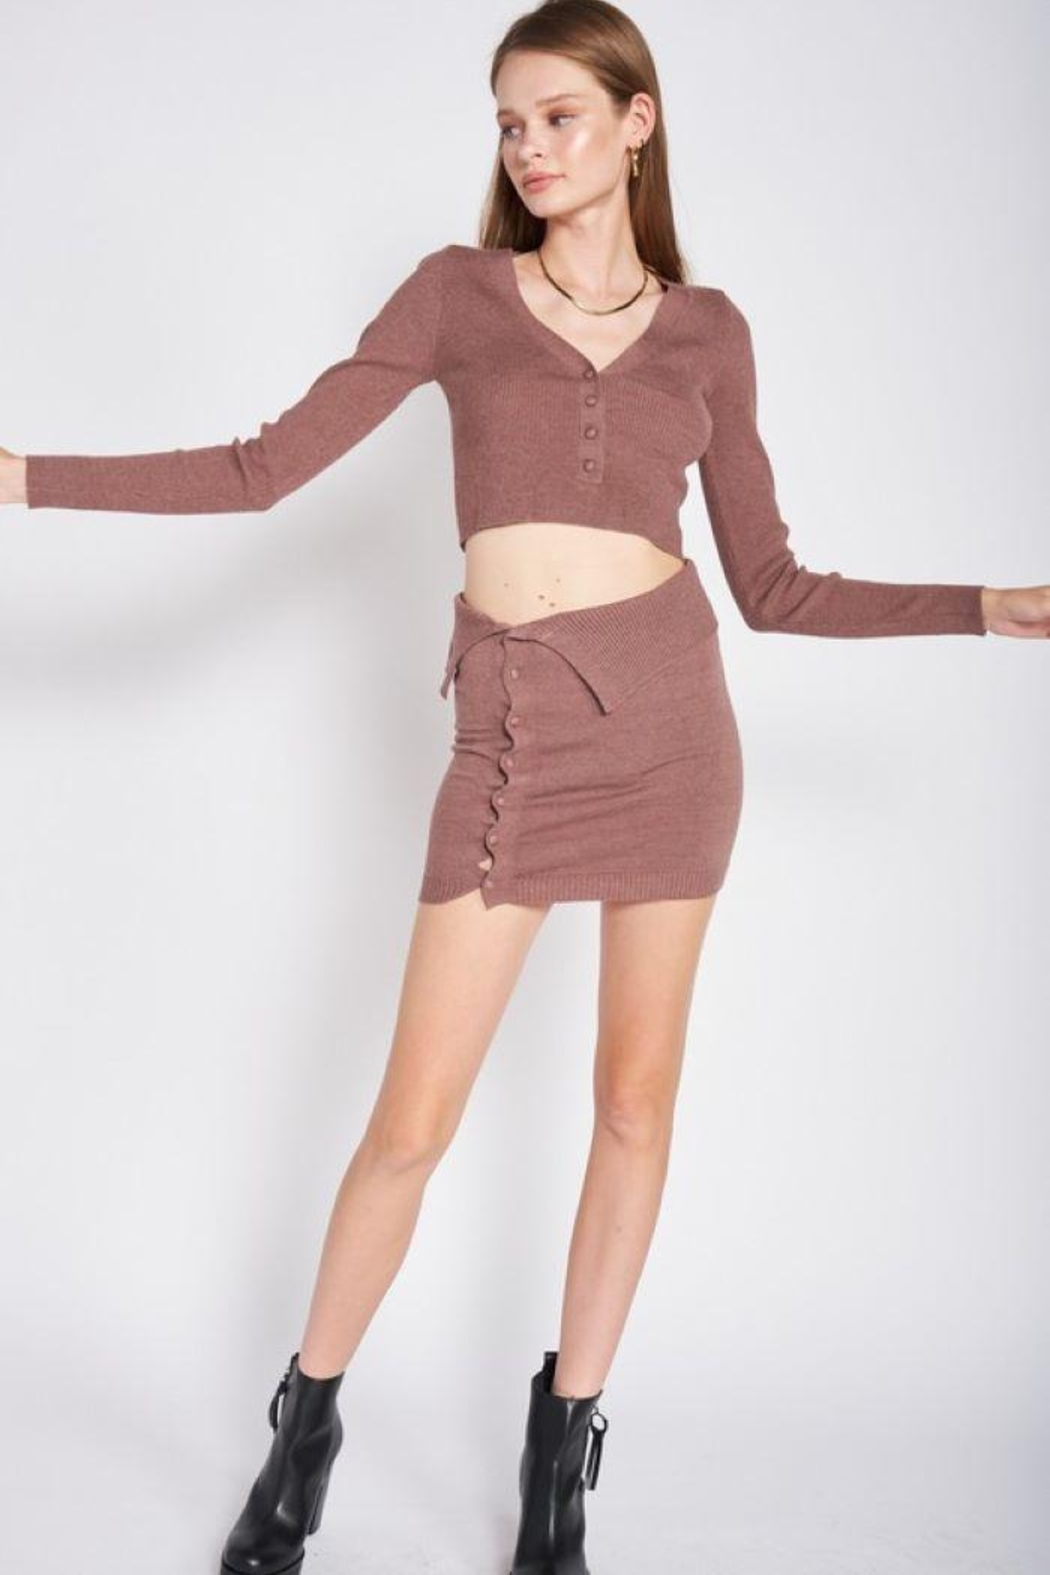 Emory Park Sweater Button Down Crop Top - Front Full Image